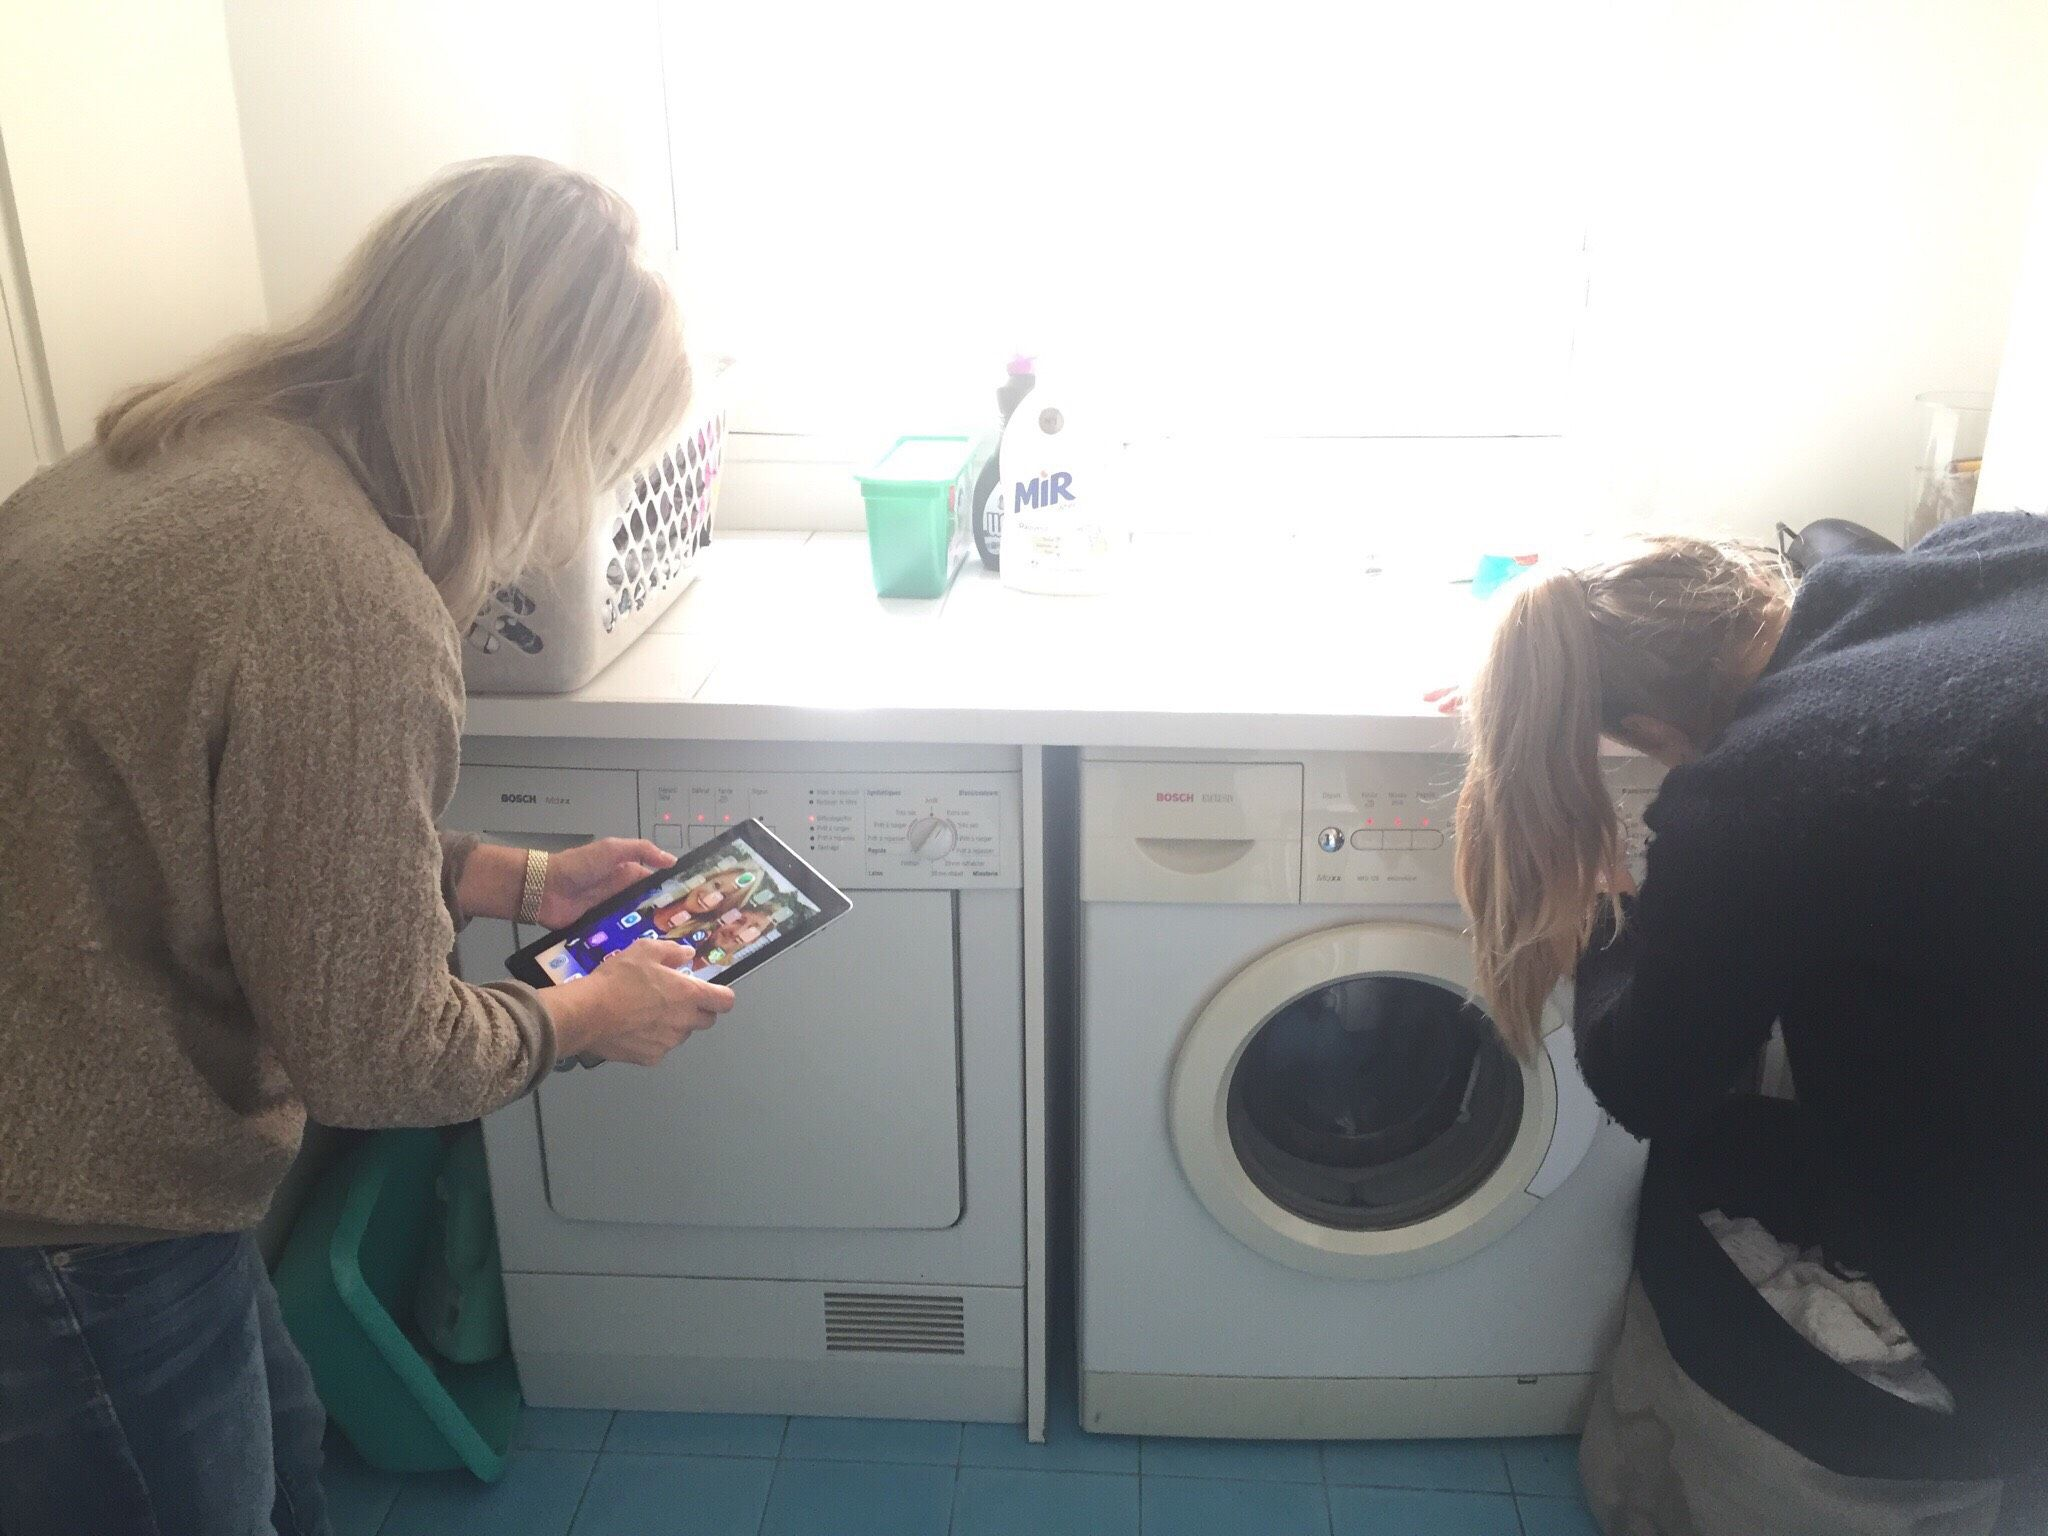 Plan your washing machine to save time in your daily home! #smarthome #technology #smartphone #washingmachine #connected #object #hightech #ALT #WAI #W3C #WC3G